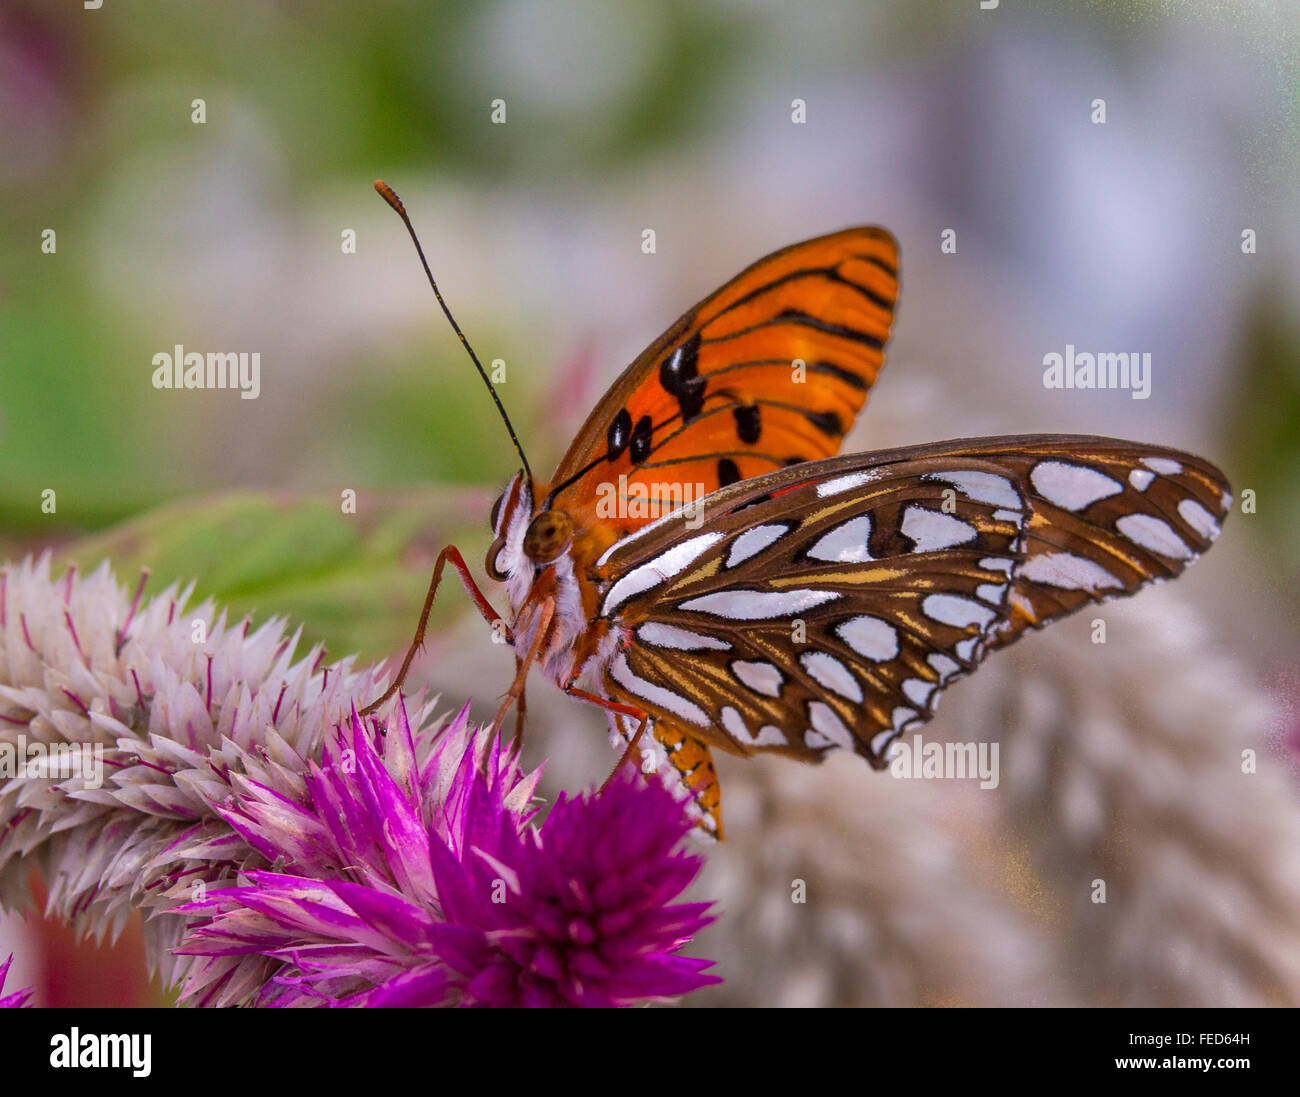 Gulf Fritillary Butterfly Agraulis vanillae on a flower at The Butterfly Estates in Fort Myers Florida - Stock Image